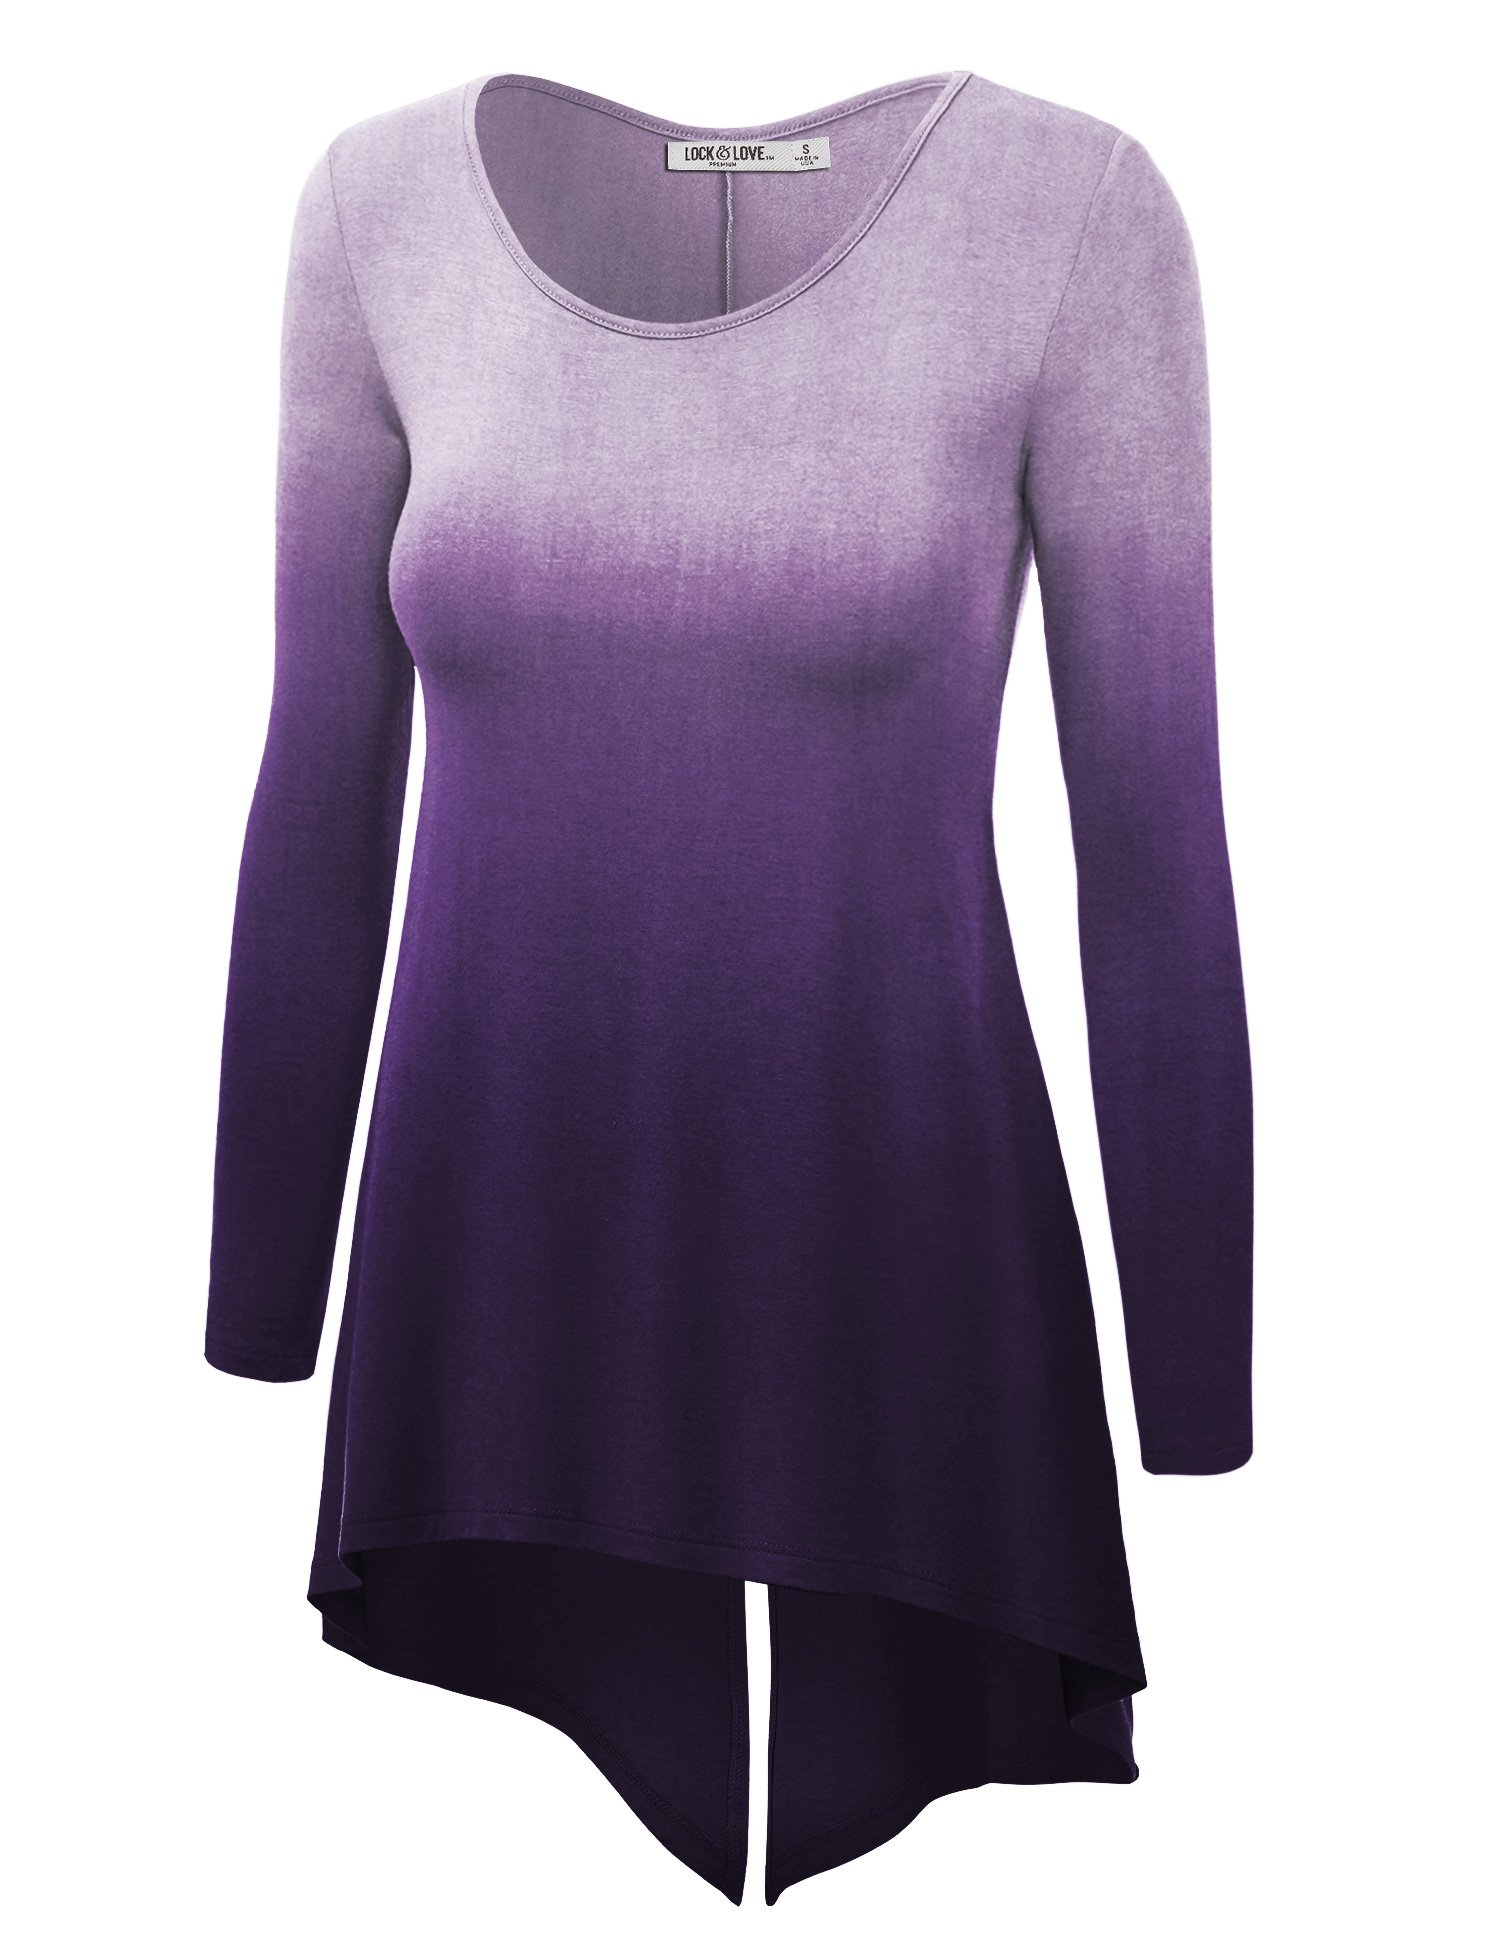 WT1174 Womens Round Neck Long Sleeve Ombre Tunic with Back Slit XXXL Purple